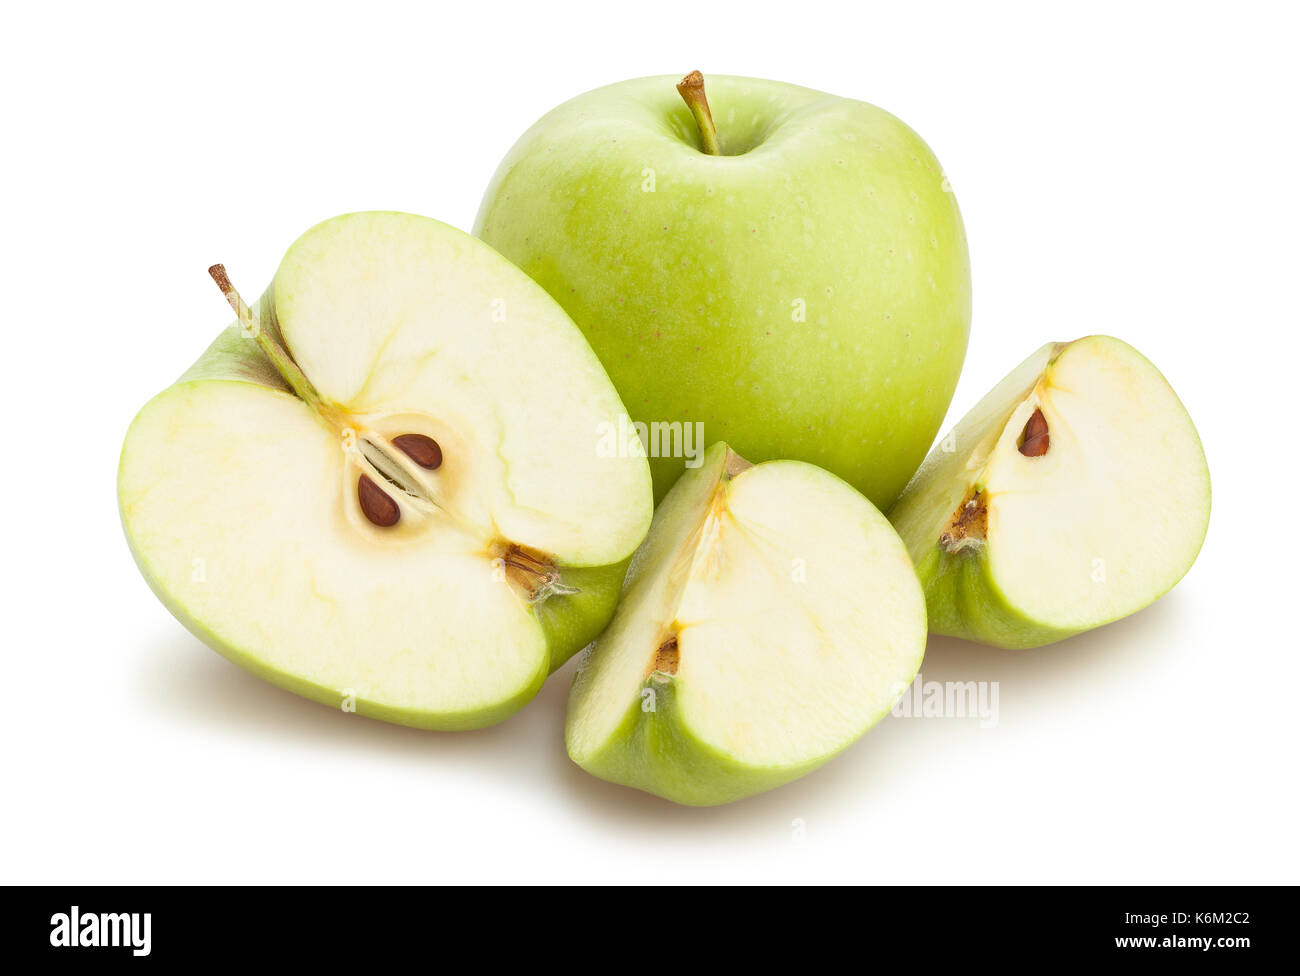 sliced green apple path isolated - Stock Image